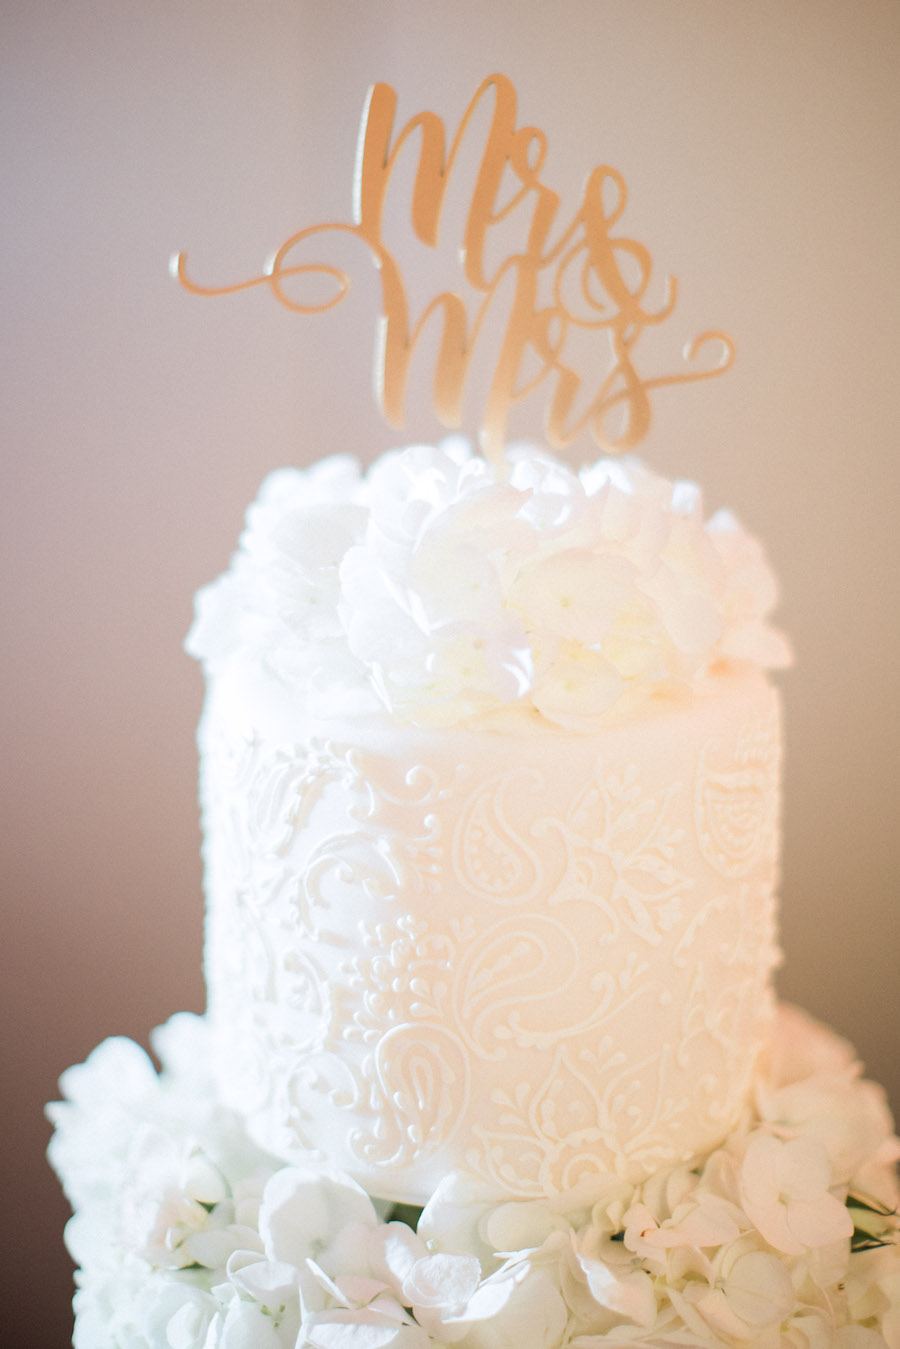 Ivory Cake Topper with Floral Monochromatic Detail Pattern and Gold Mr. and Mrs. Cake Topper